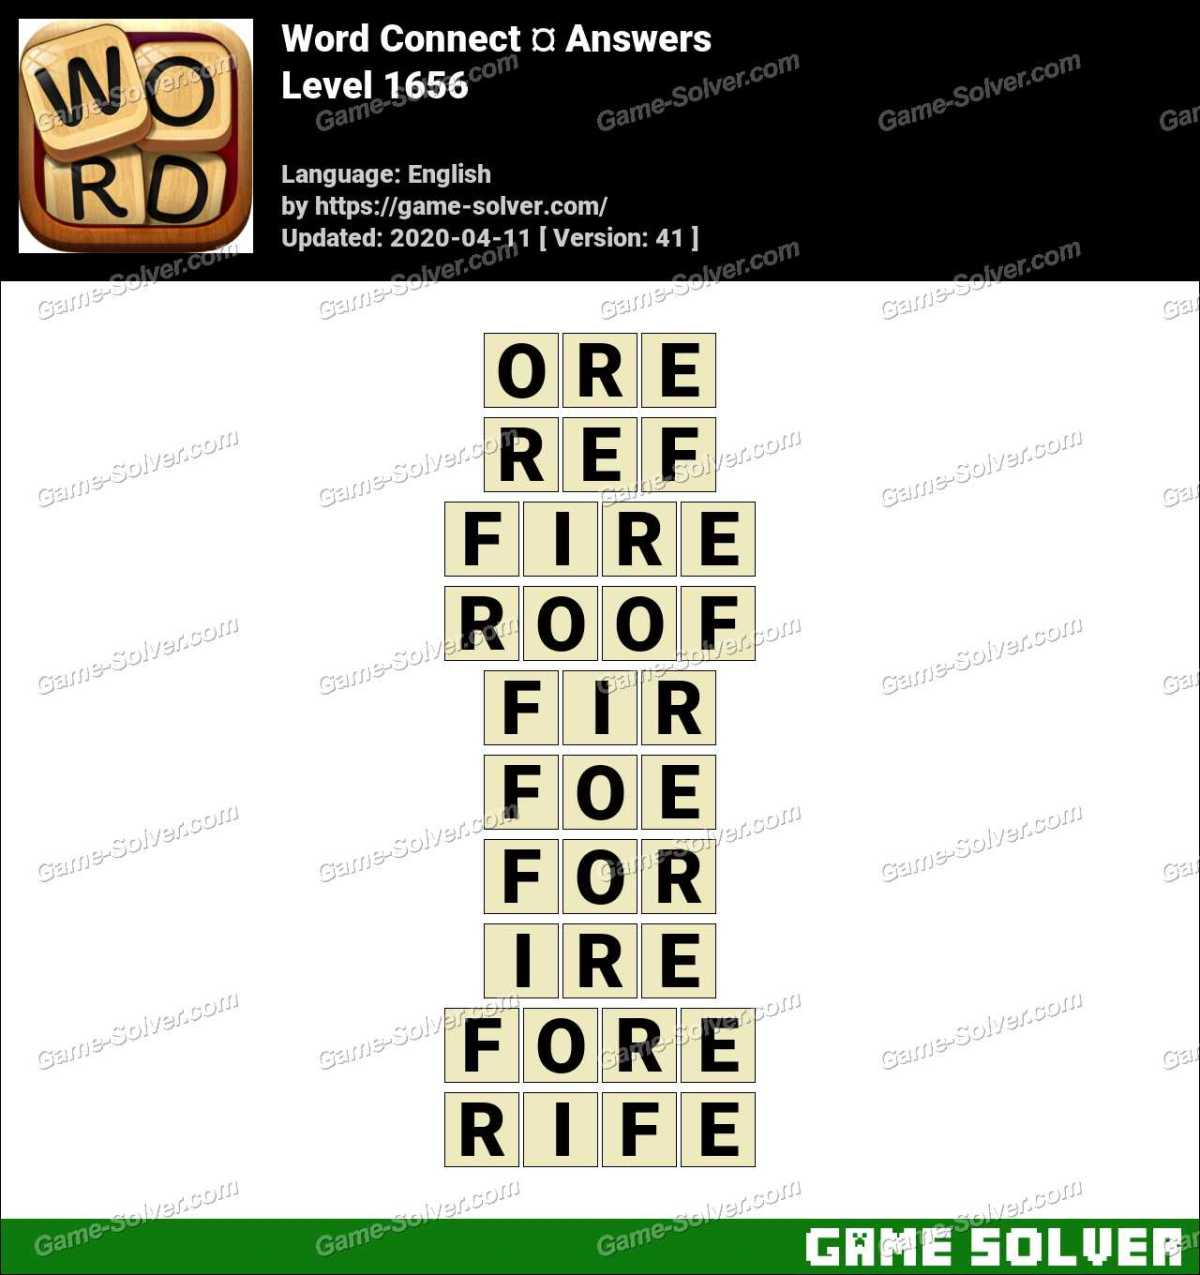 Word Connect Level 1656 Answers